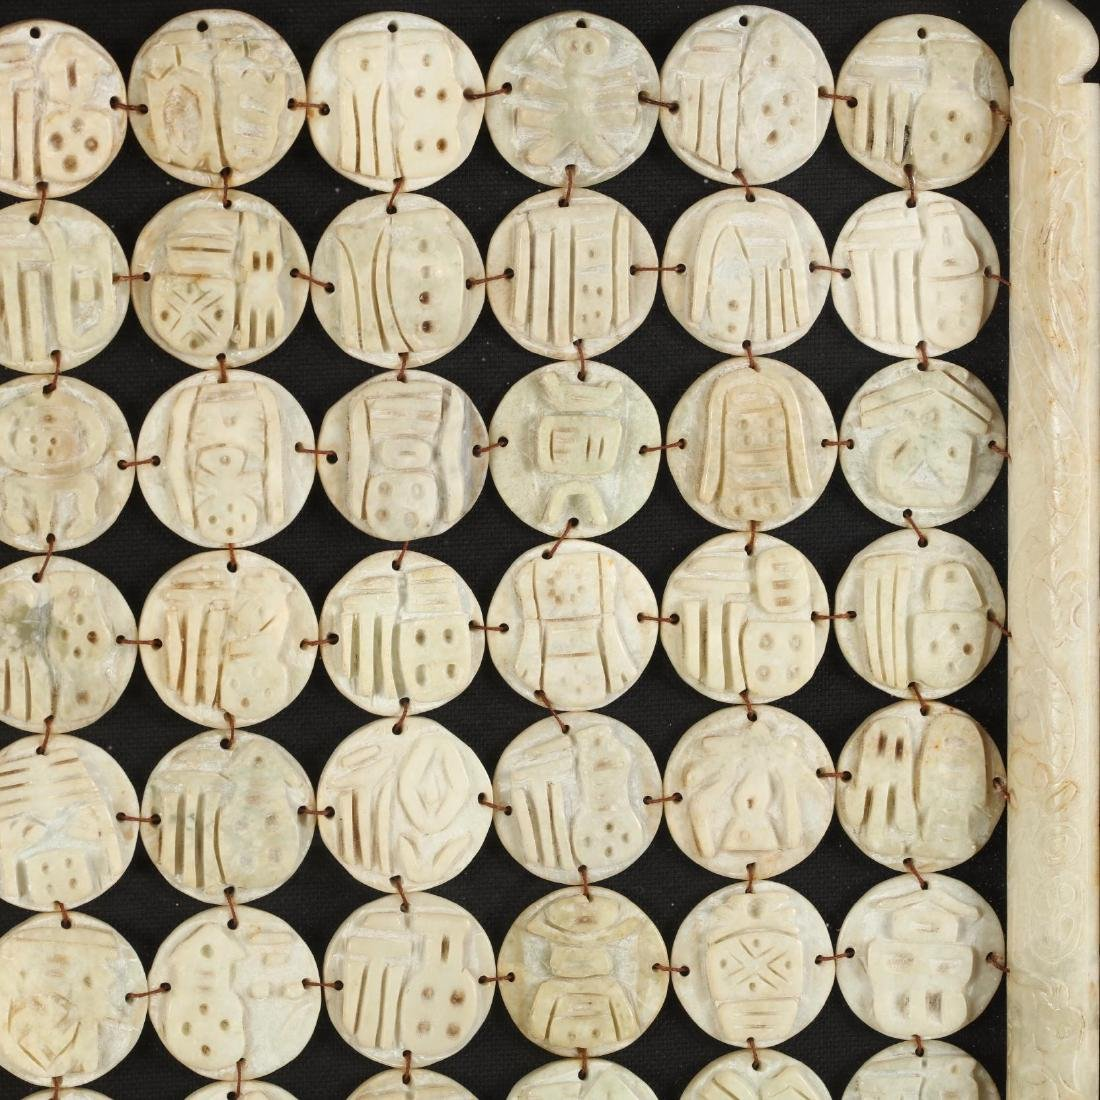 Contemporary Chinese White Hardstone Composition - 3